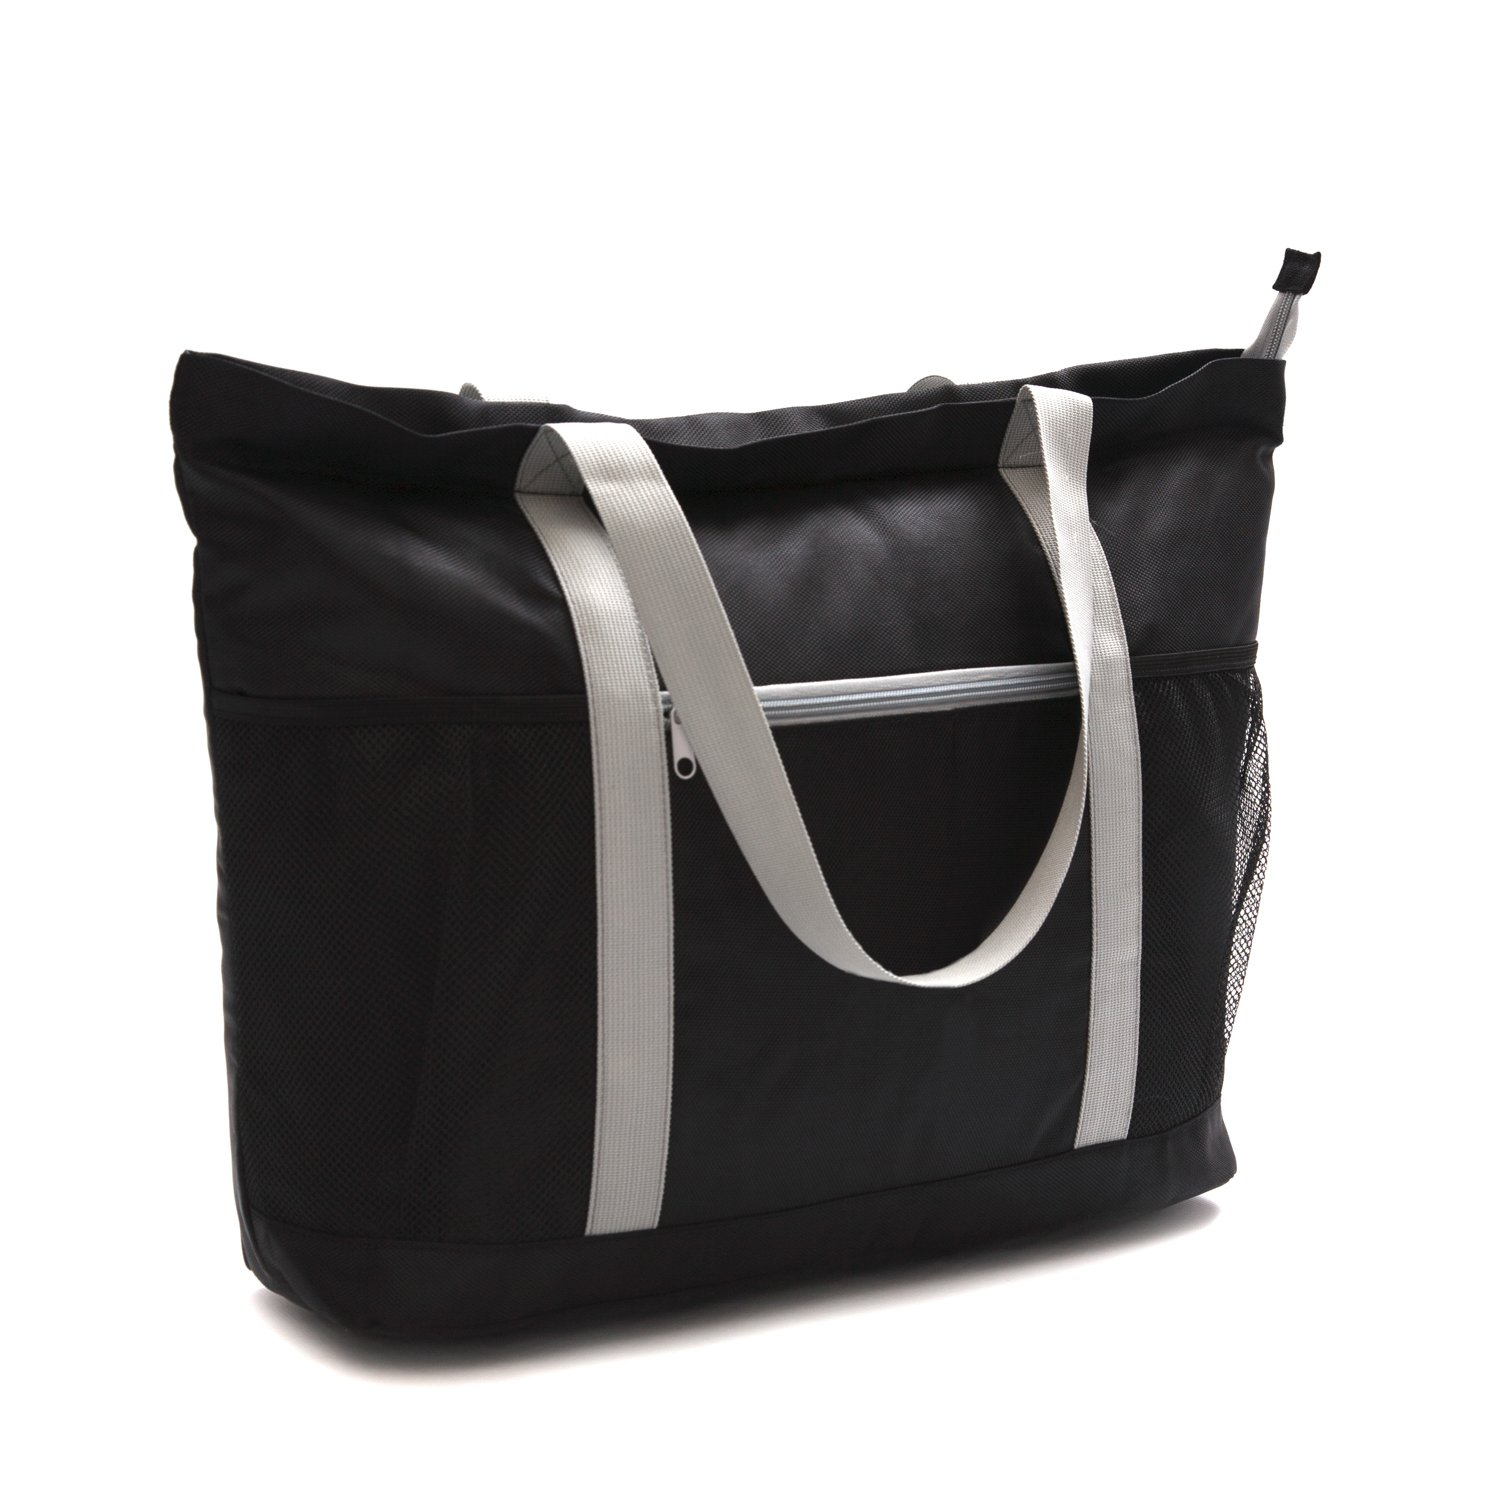 c1862eda0de5 Large Beach Bag With Zipper - XL Foldable Tote Bag For Travel And Shopping  - Large Tote Bag With Many Pockets (Black)